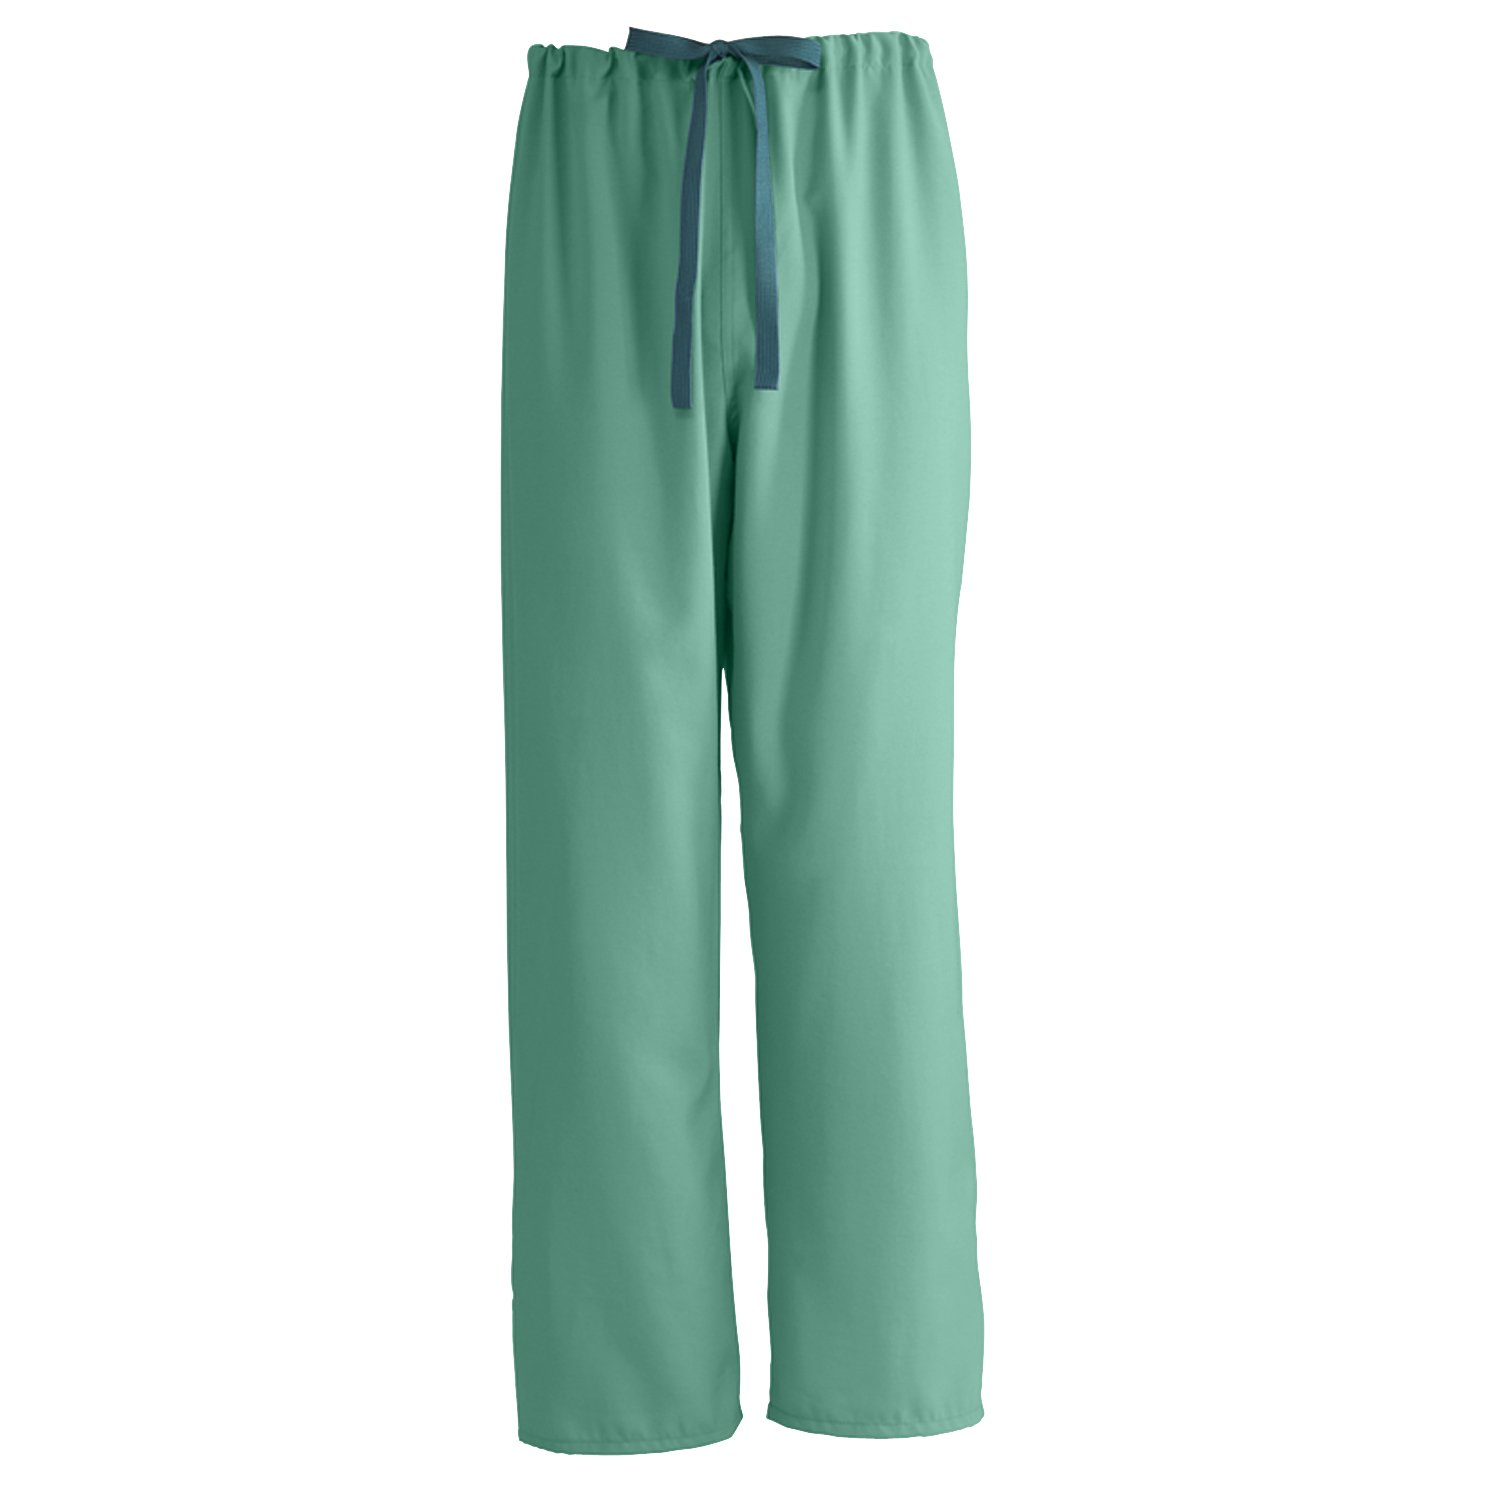 Medline PerforMAX Reversible Drawstring Scrub Pant, ANG-CC, Medium, Jade Green by Medline (Image #1)